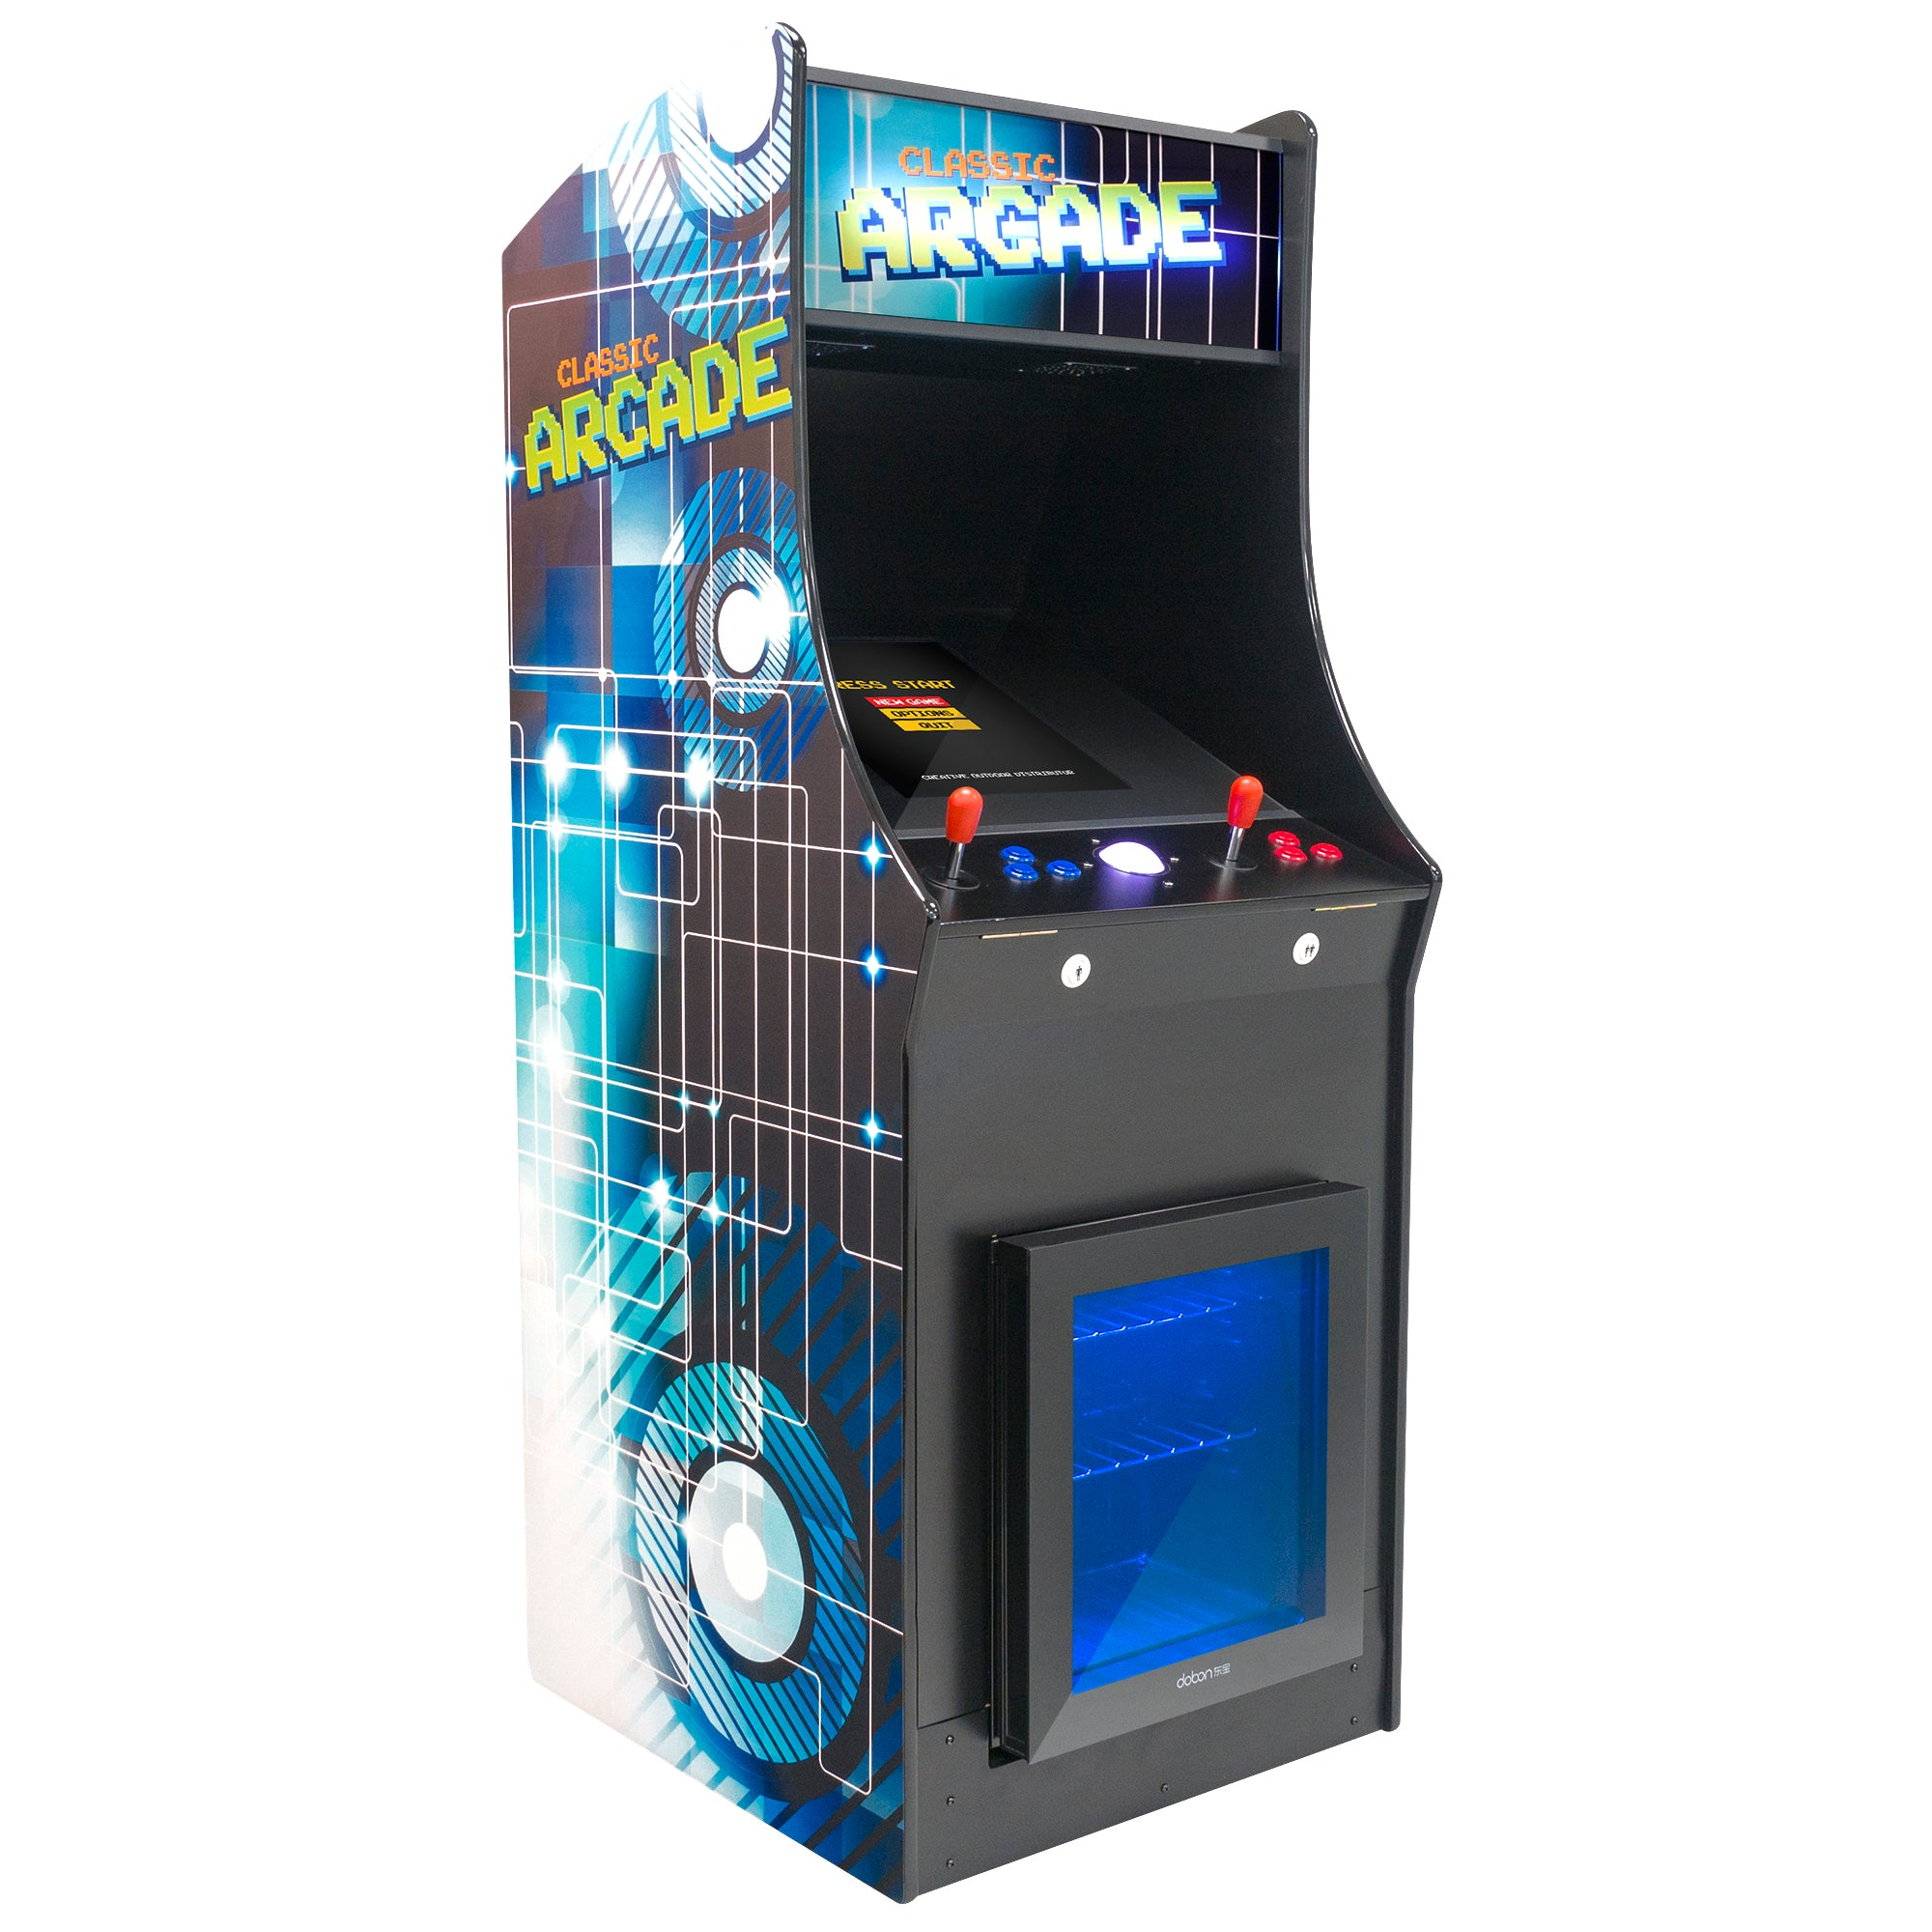 2 Player Stand Up FULL SIZE Classic Video Game Arcade with Built-in Refrigerator